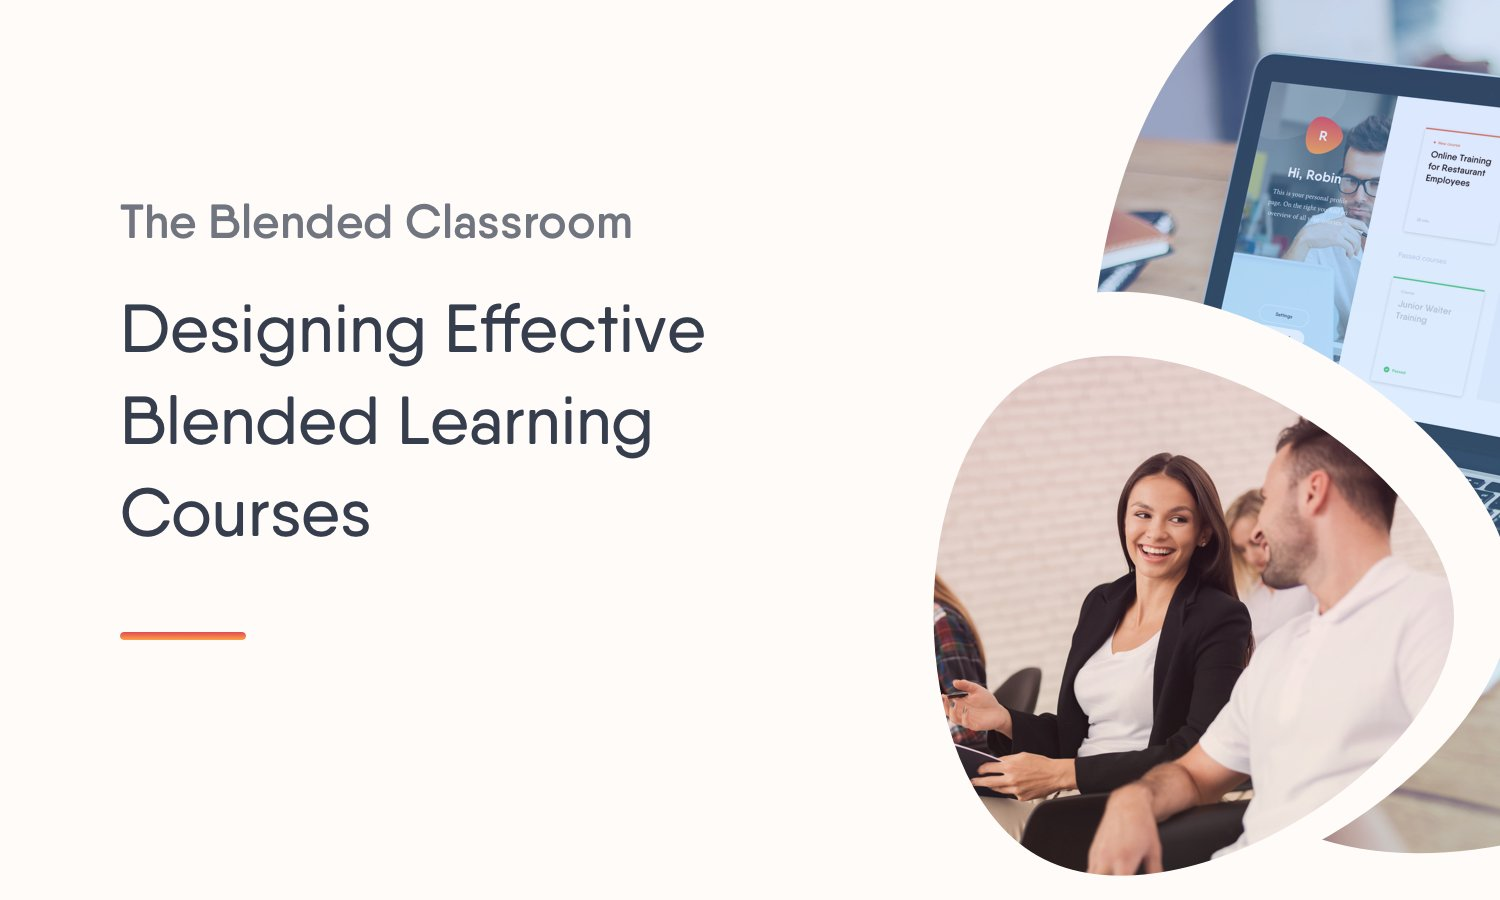 Benefits of Blended Learning@2x (1)